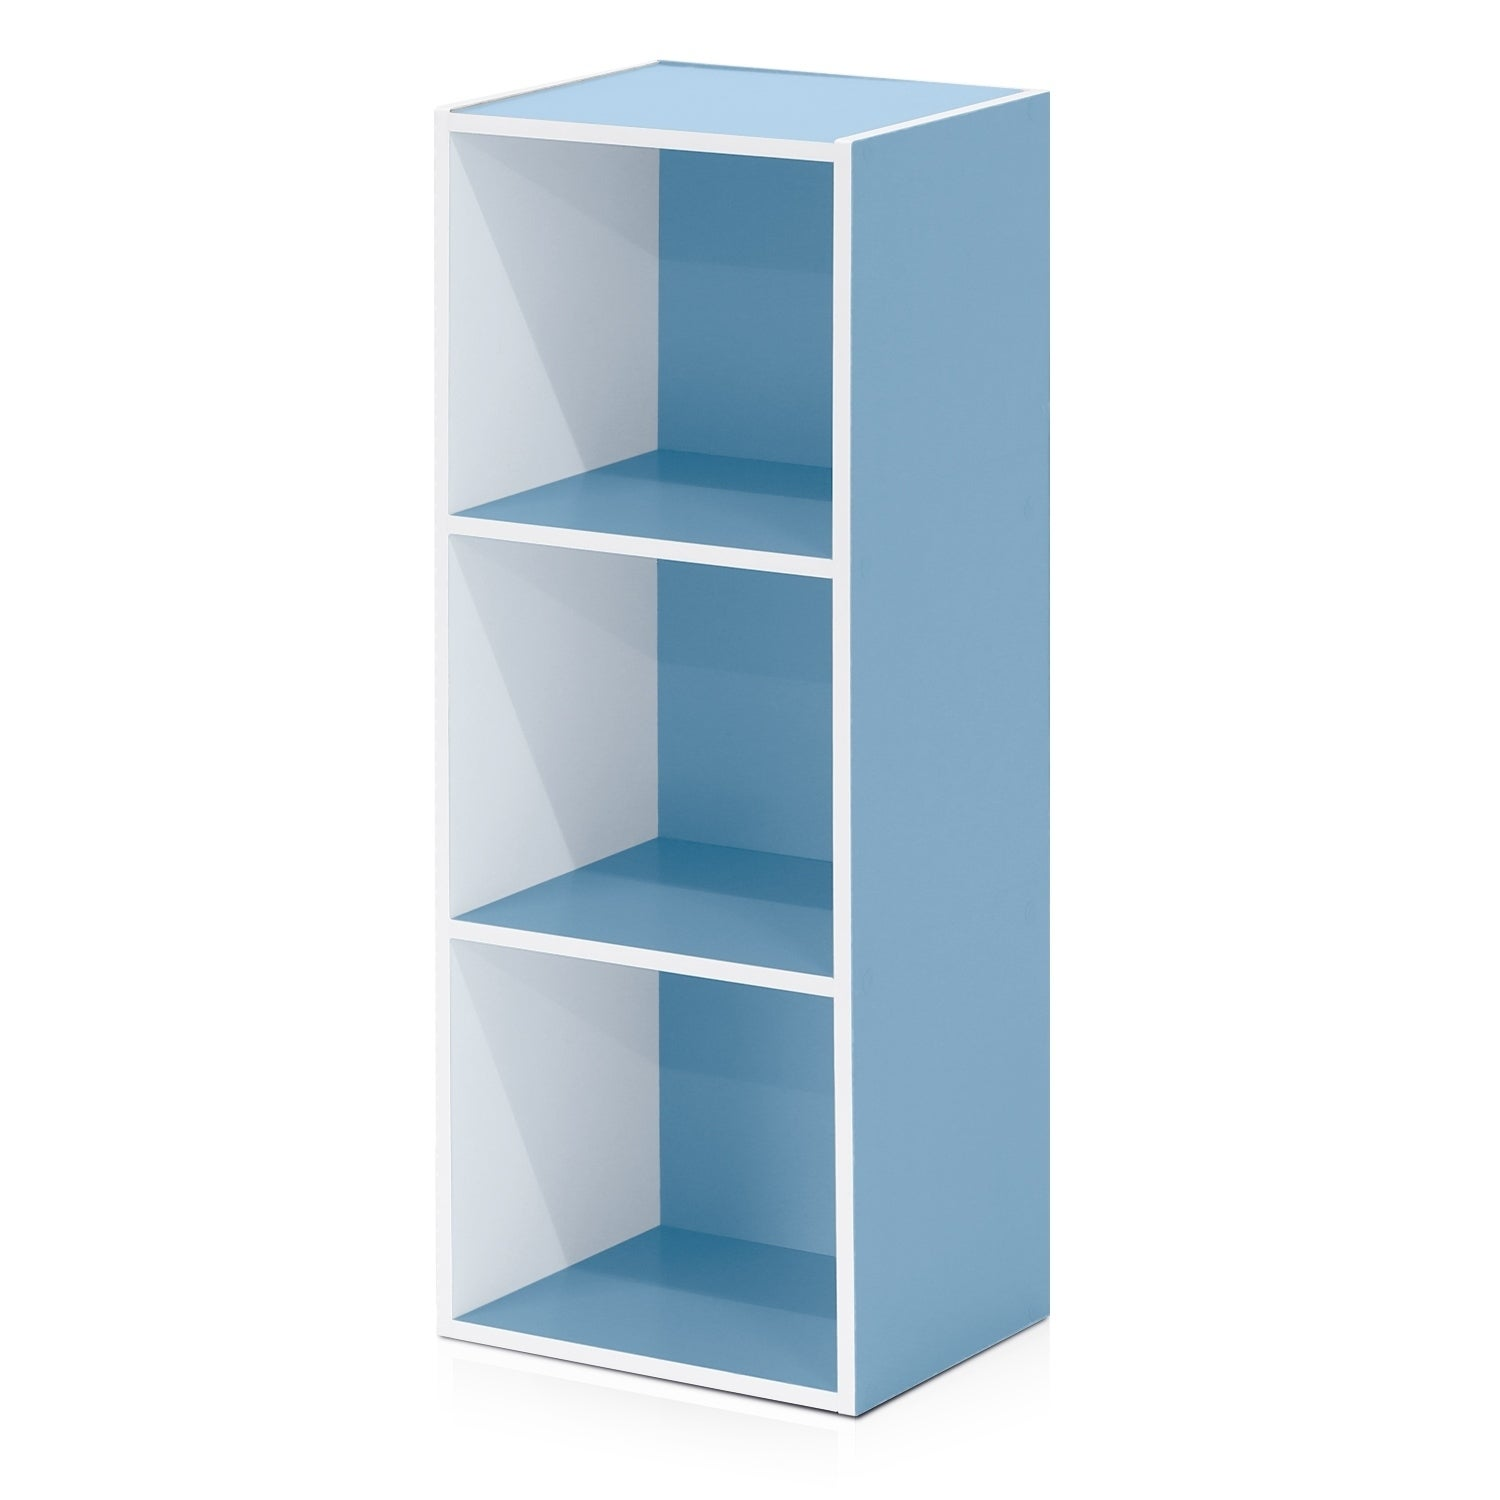 Buy Blue Bookshelves & Bookcases Online at Overstock.com | Our Best ...